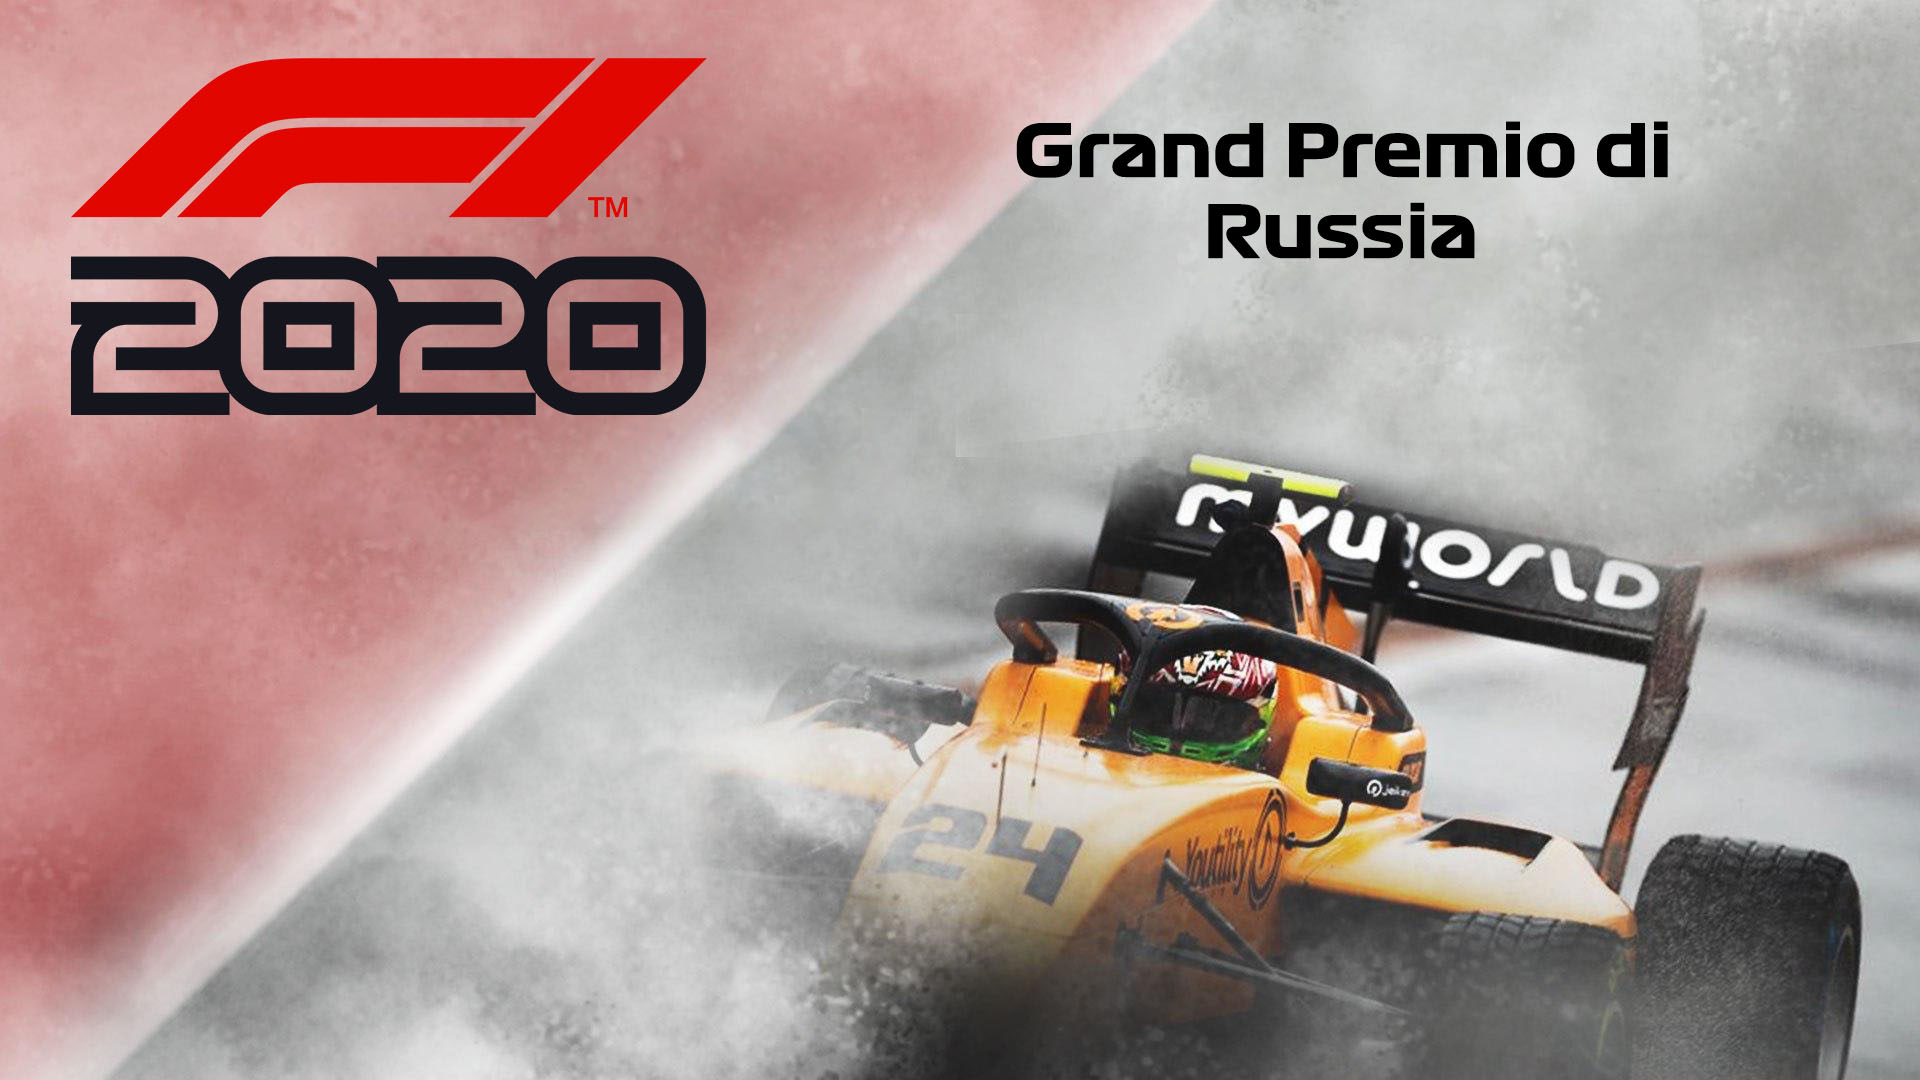 F1, GP di Russia 2020: dove vedere la gara in TV e streaming